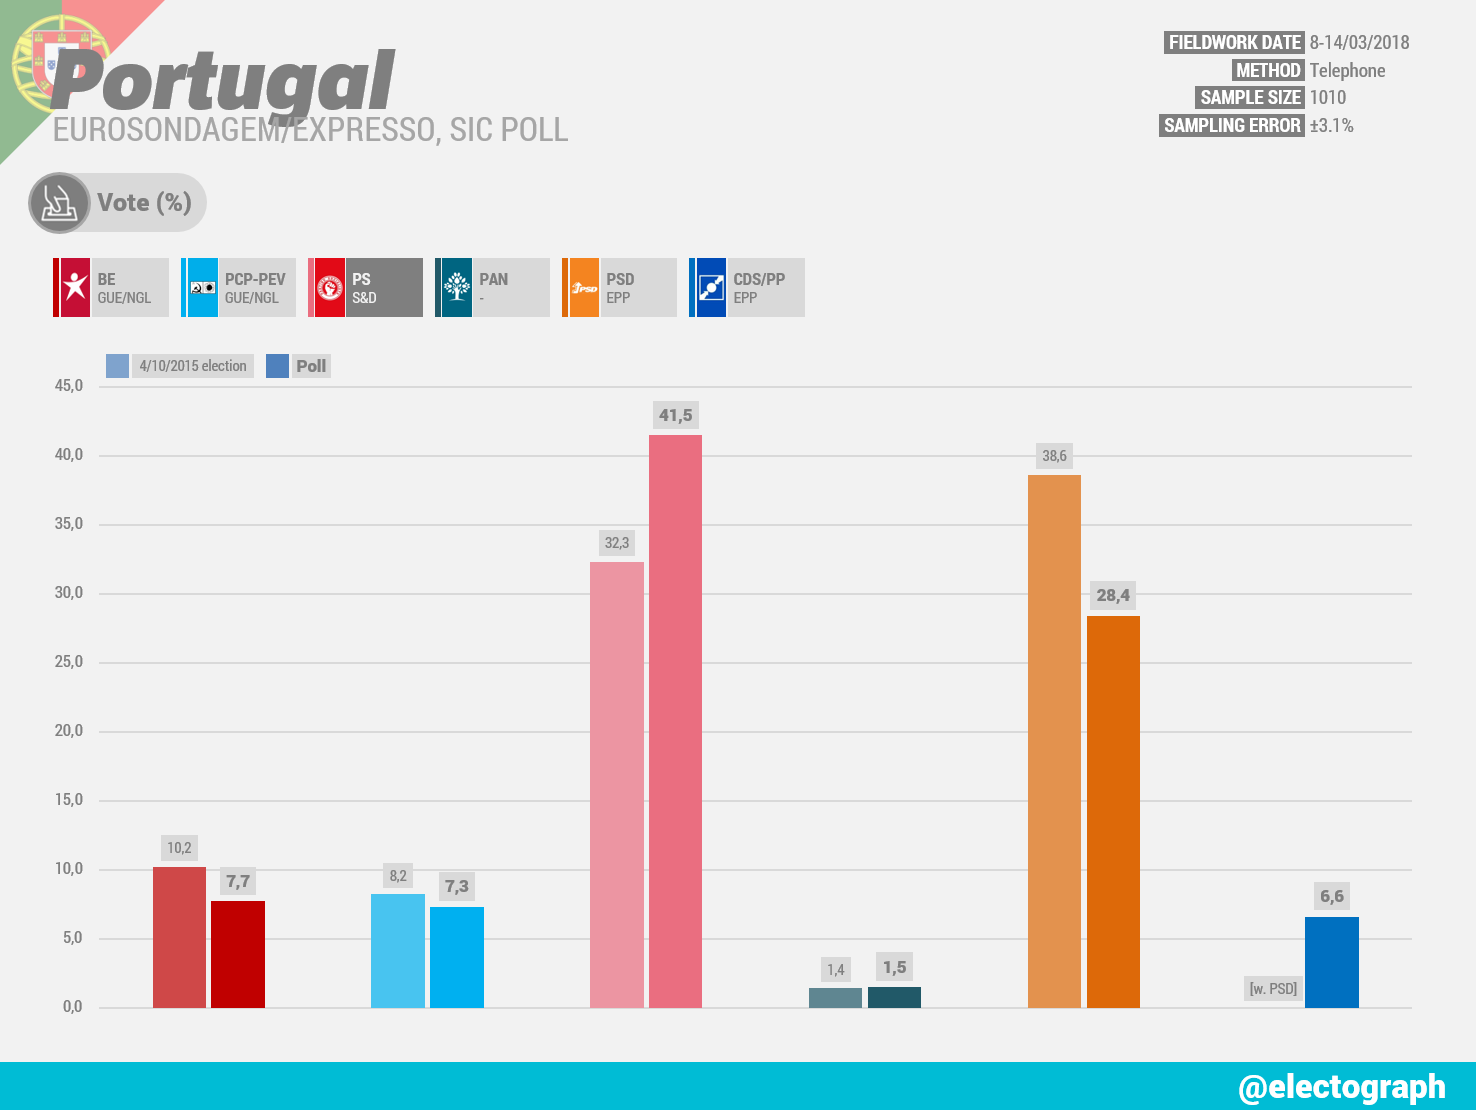 PORTUGAL Eurosondagem poll chart, March 2018